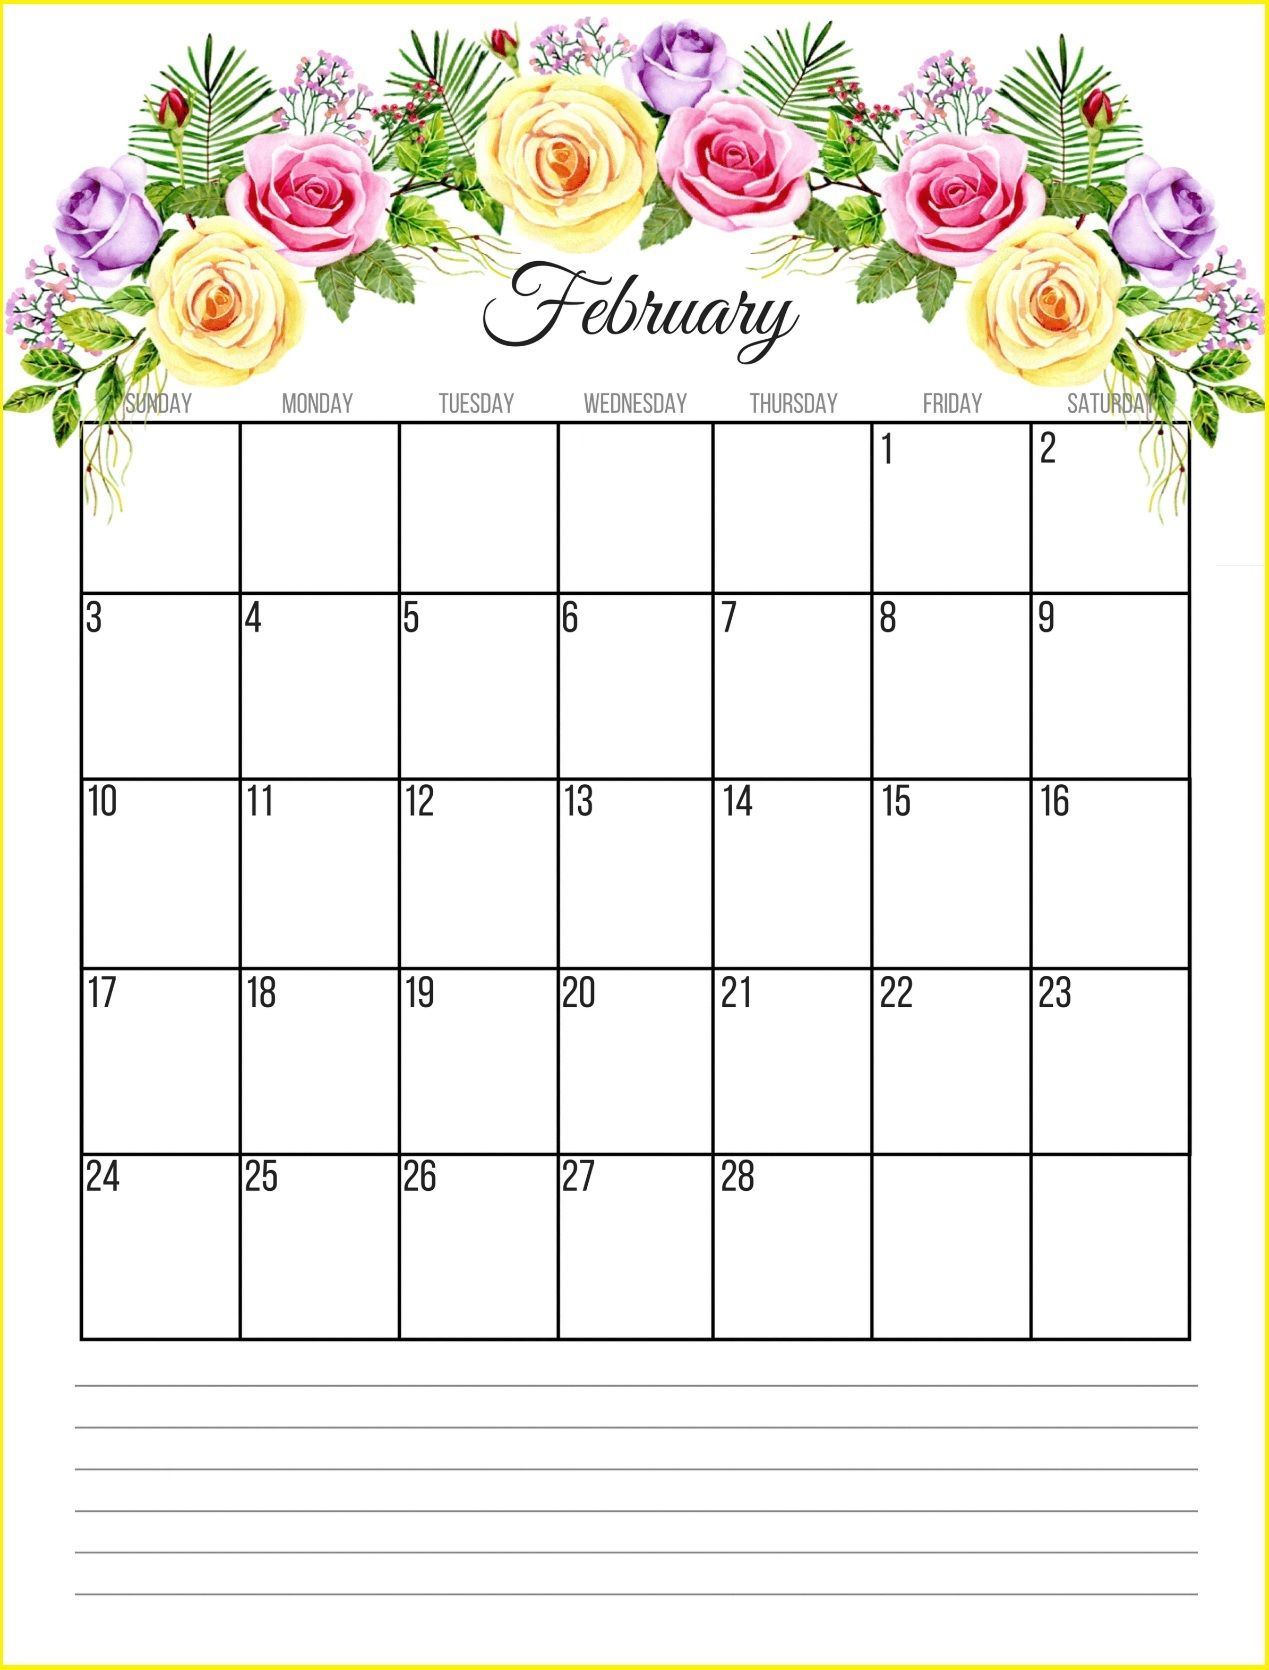 Calendar February 2019 Flowers Floral February 2019 Calendar Monthly Templates Free Download HD